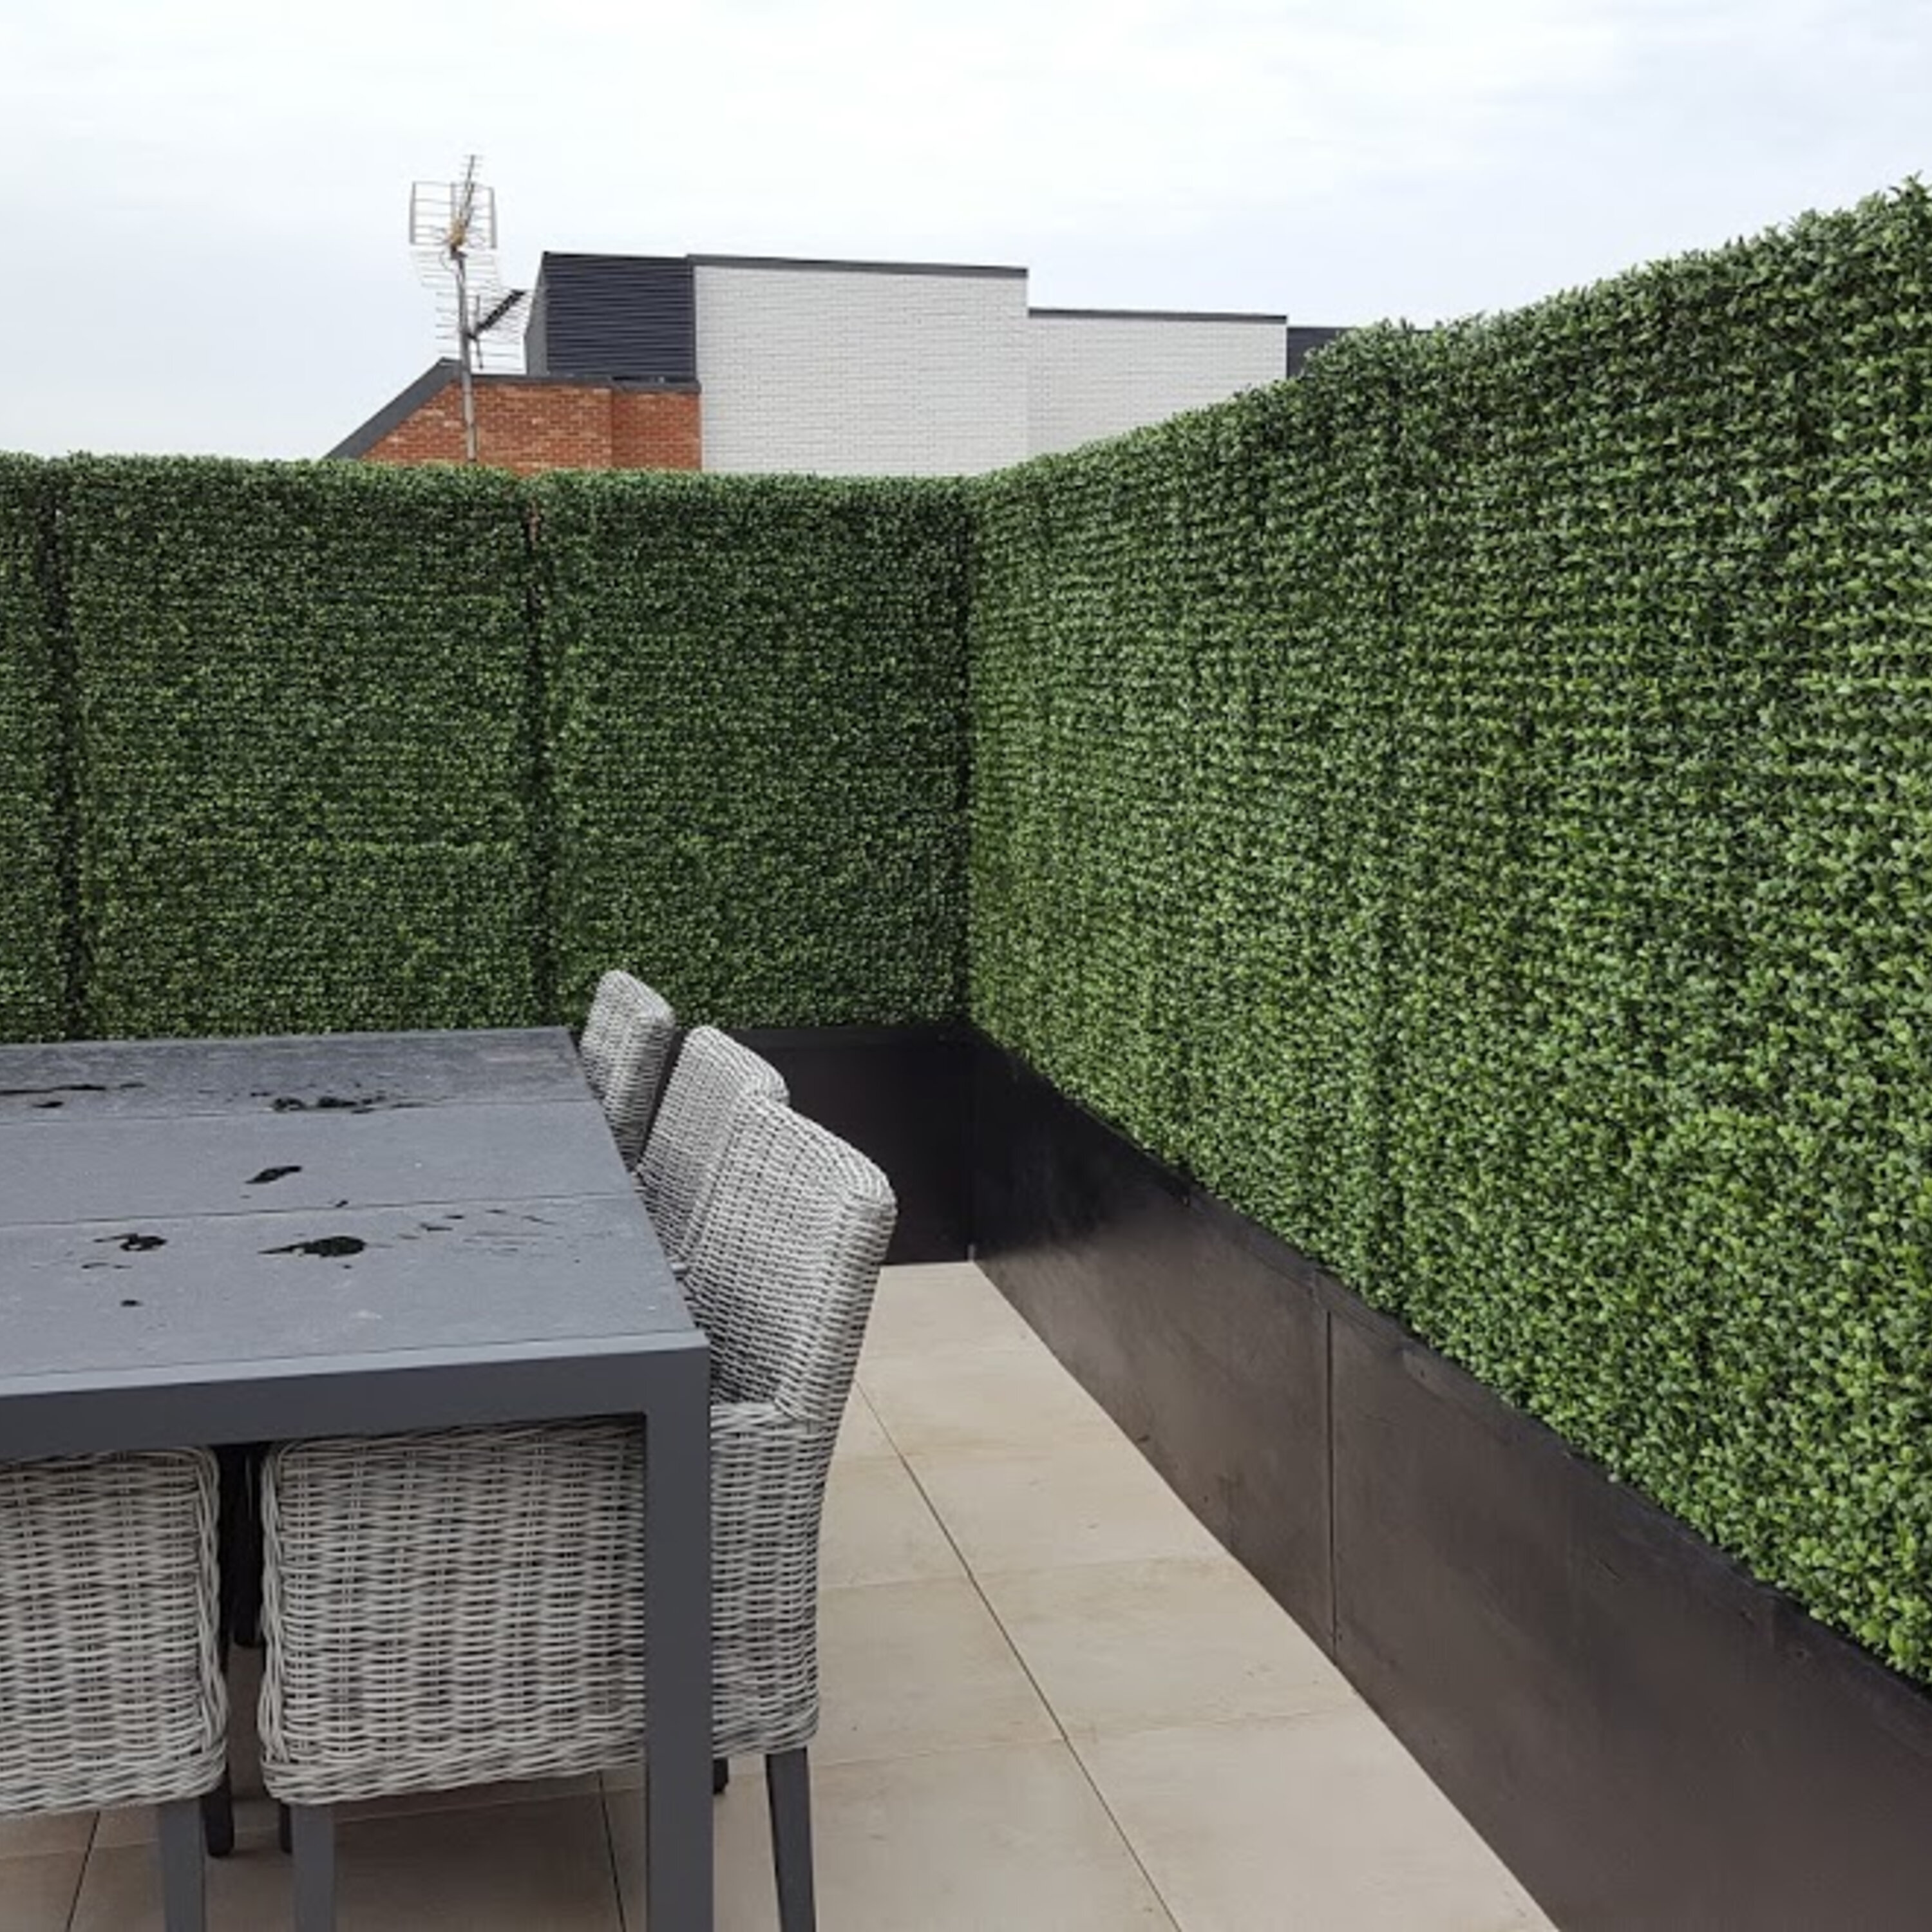 Use It As Greenery Walls Privacy Screen Panels 20 X 20 Artificial Boxwood Topiary Hedge Plant Suitable For Outdoor Or Indoor Garden Or Backyard And Home Decorations 12 Without White Flowers Tutiflores Com Br